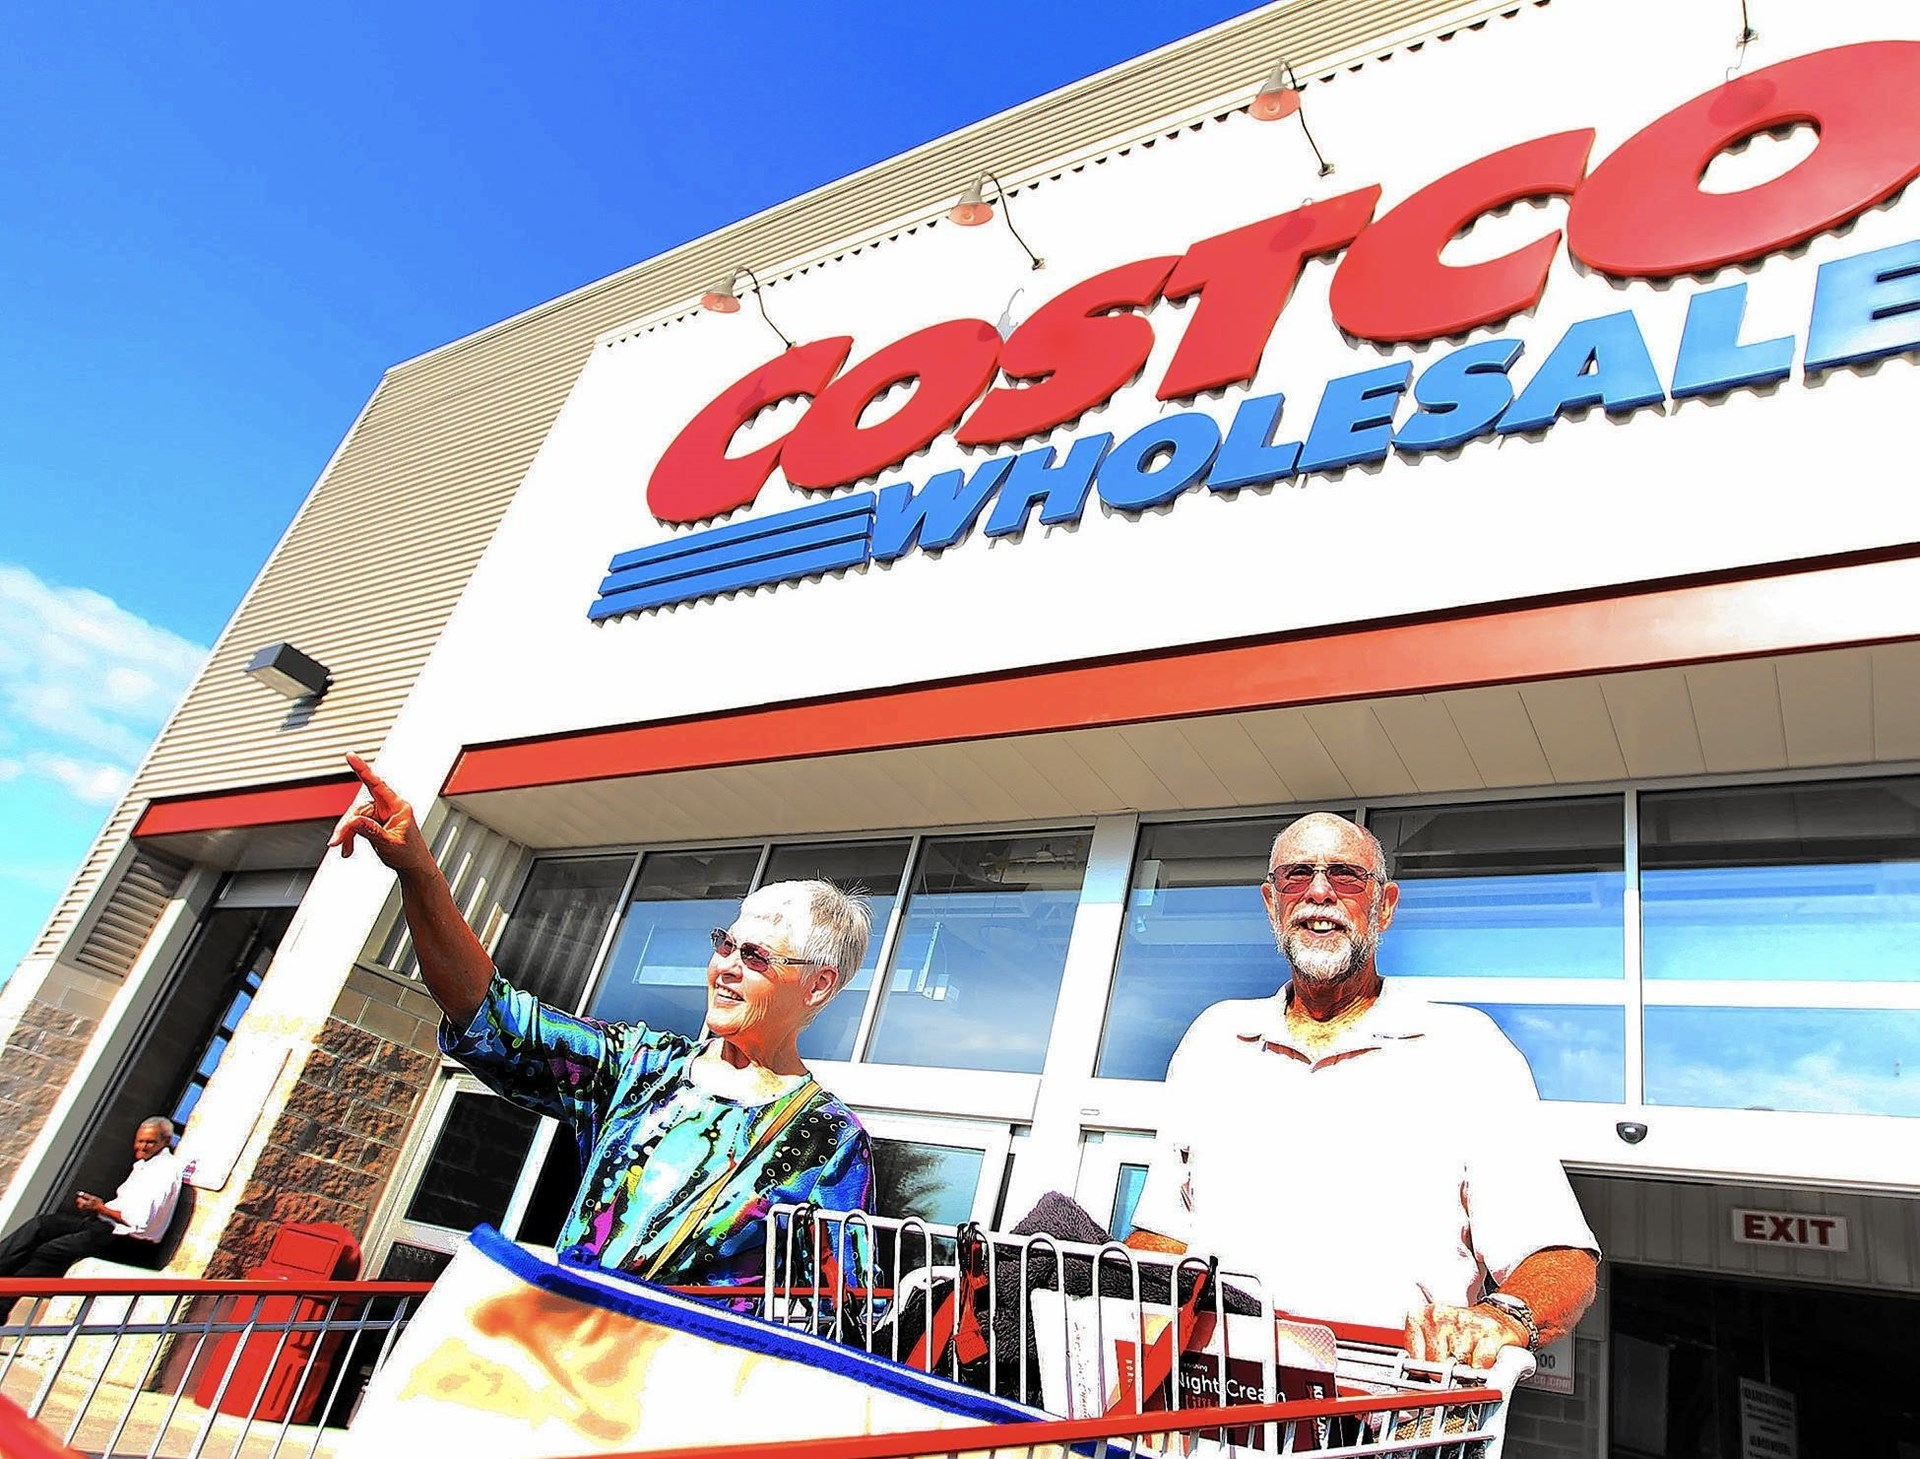 Harmony Reigns at Costco - Foundation for Economic Education